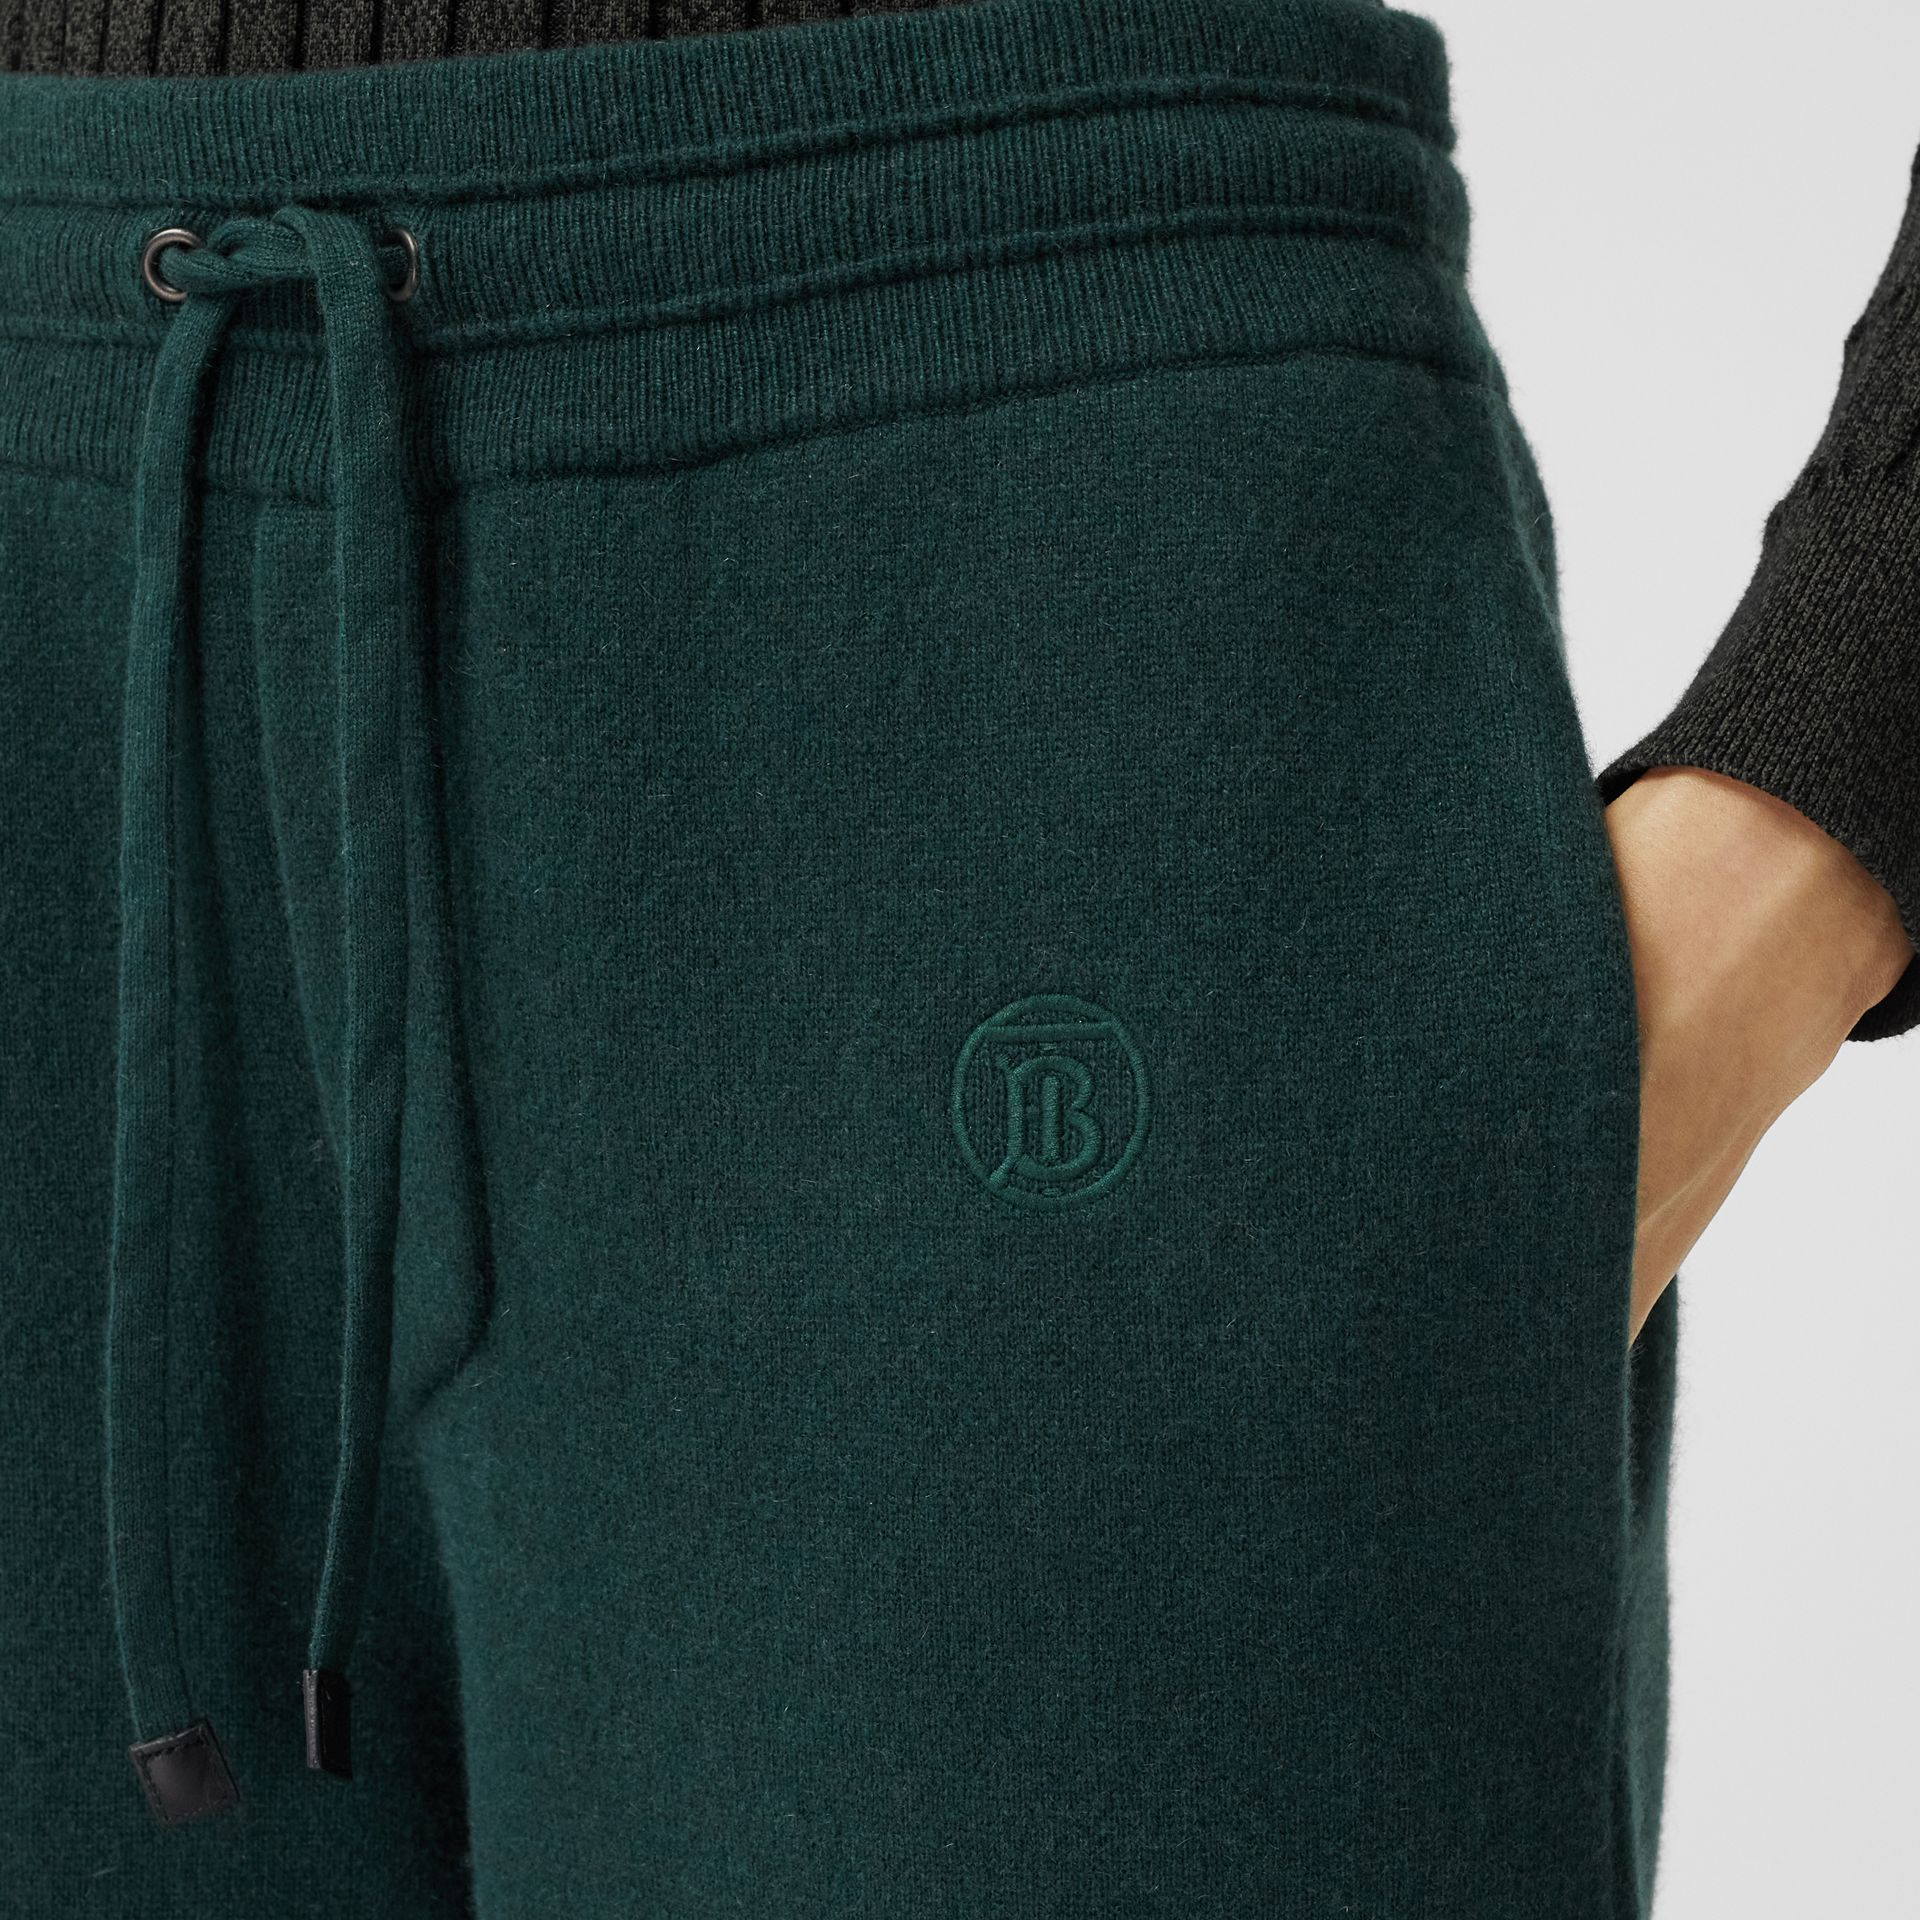 Monogram Motif Cashmere Blend Jogging Pants in Bottle Green - Women | Burberry - gallery image 1